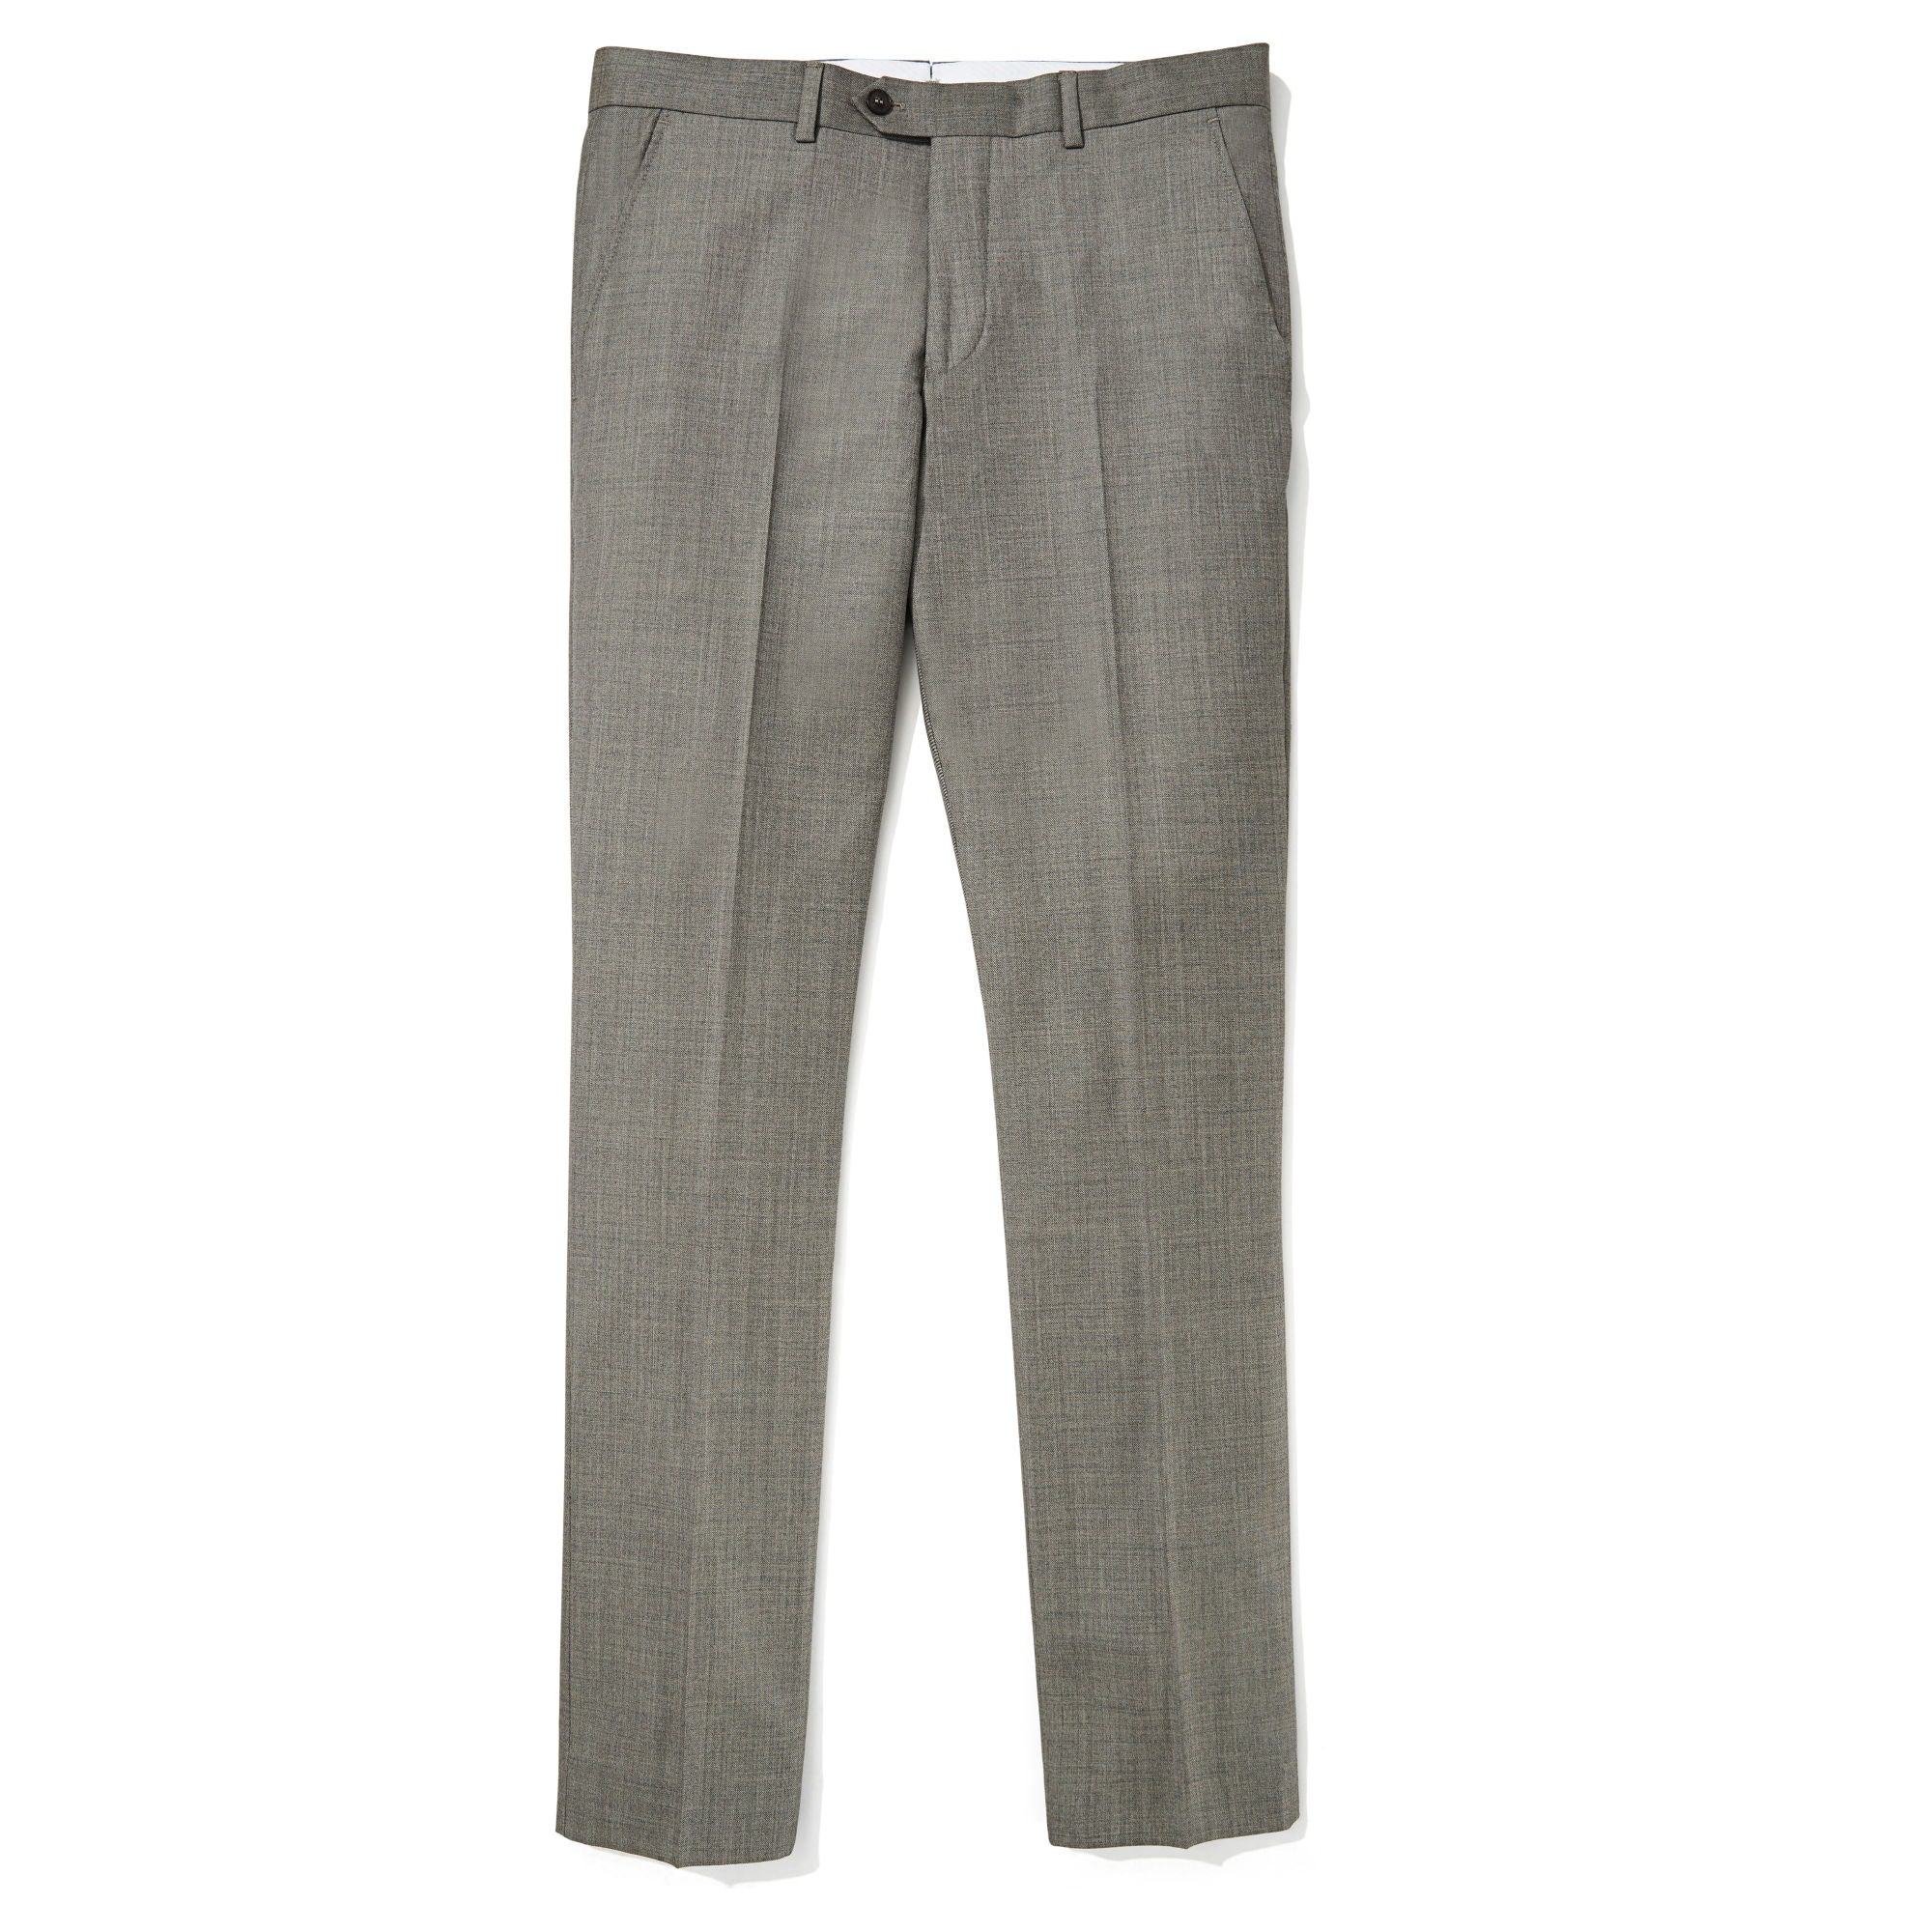 1d16ccad5460 Ross (Slim) - Taupe Sharkskin Vitale Barberis Canonico Dress Pants ...